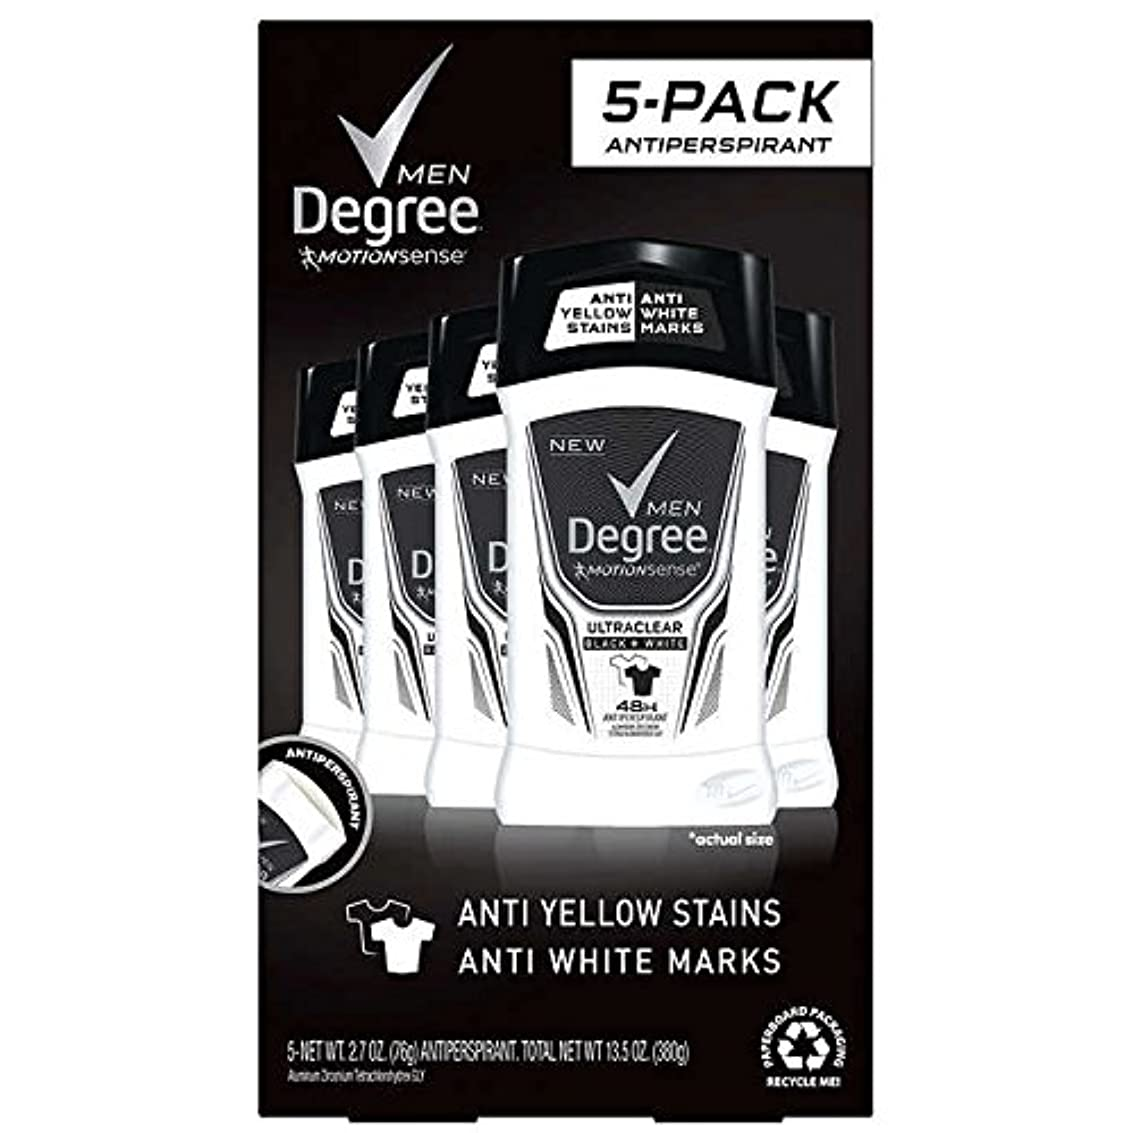 快適評判契約するDegree Men Ultra Clear Black + White Solid Deodorant 2.7oz (76g), 5-pack [並行輸入品]